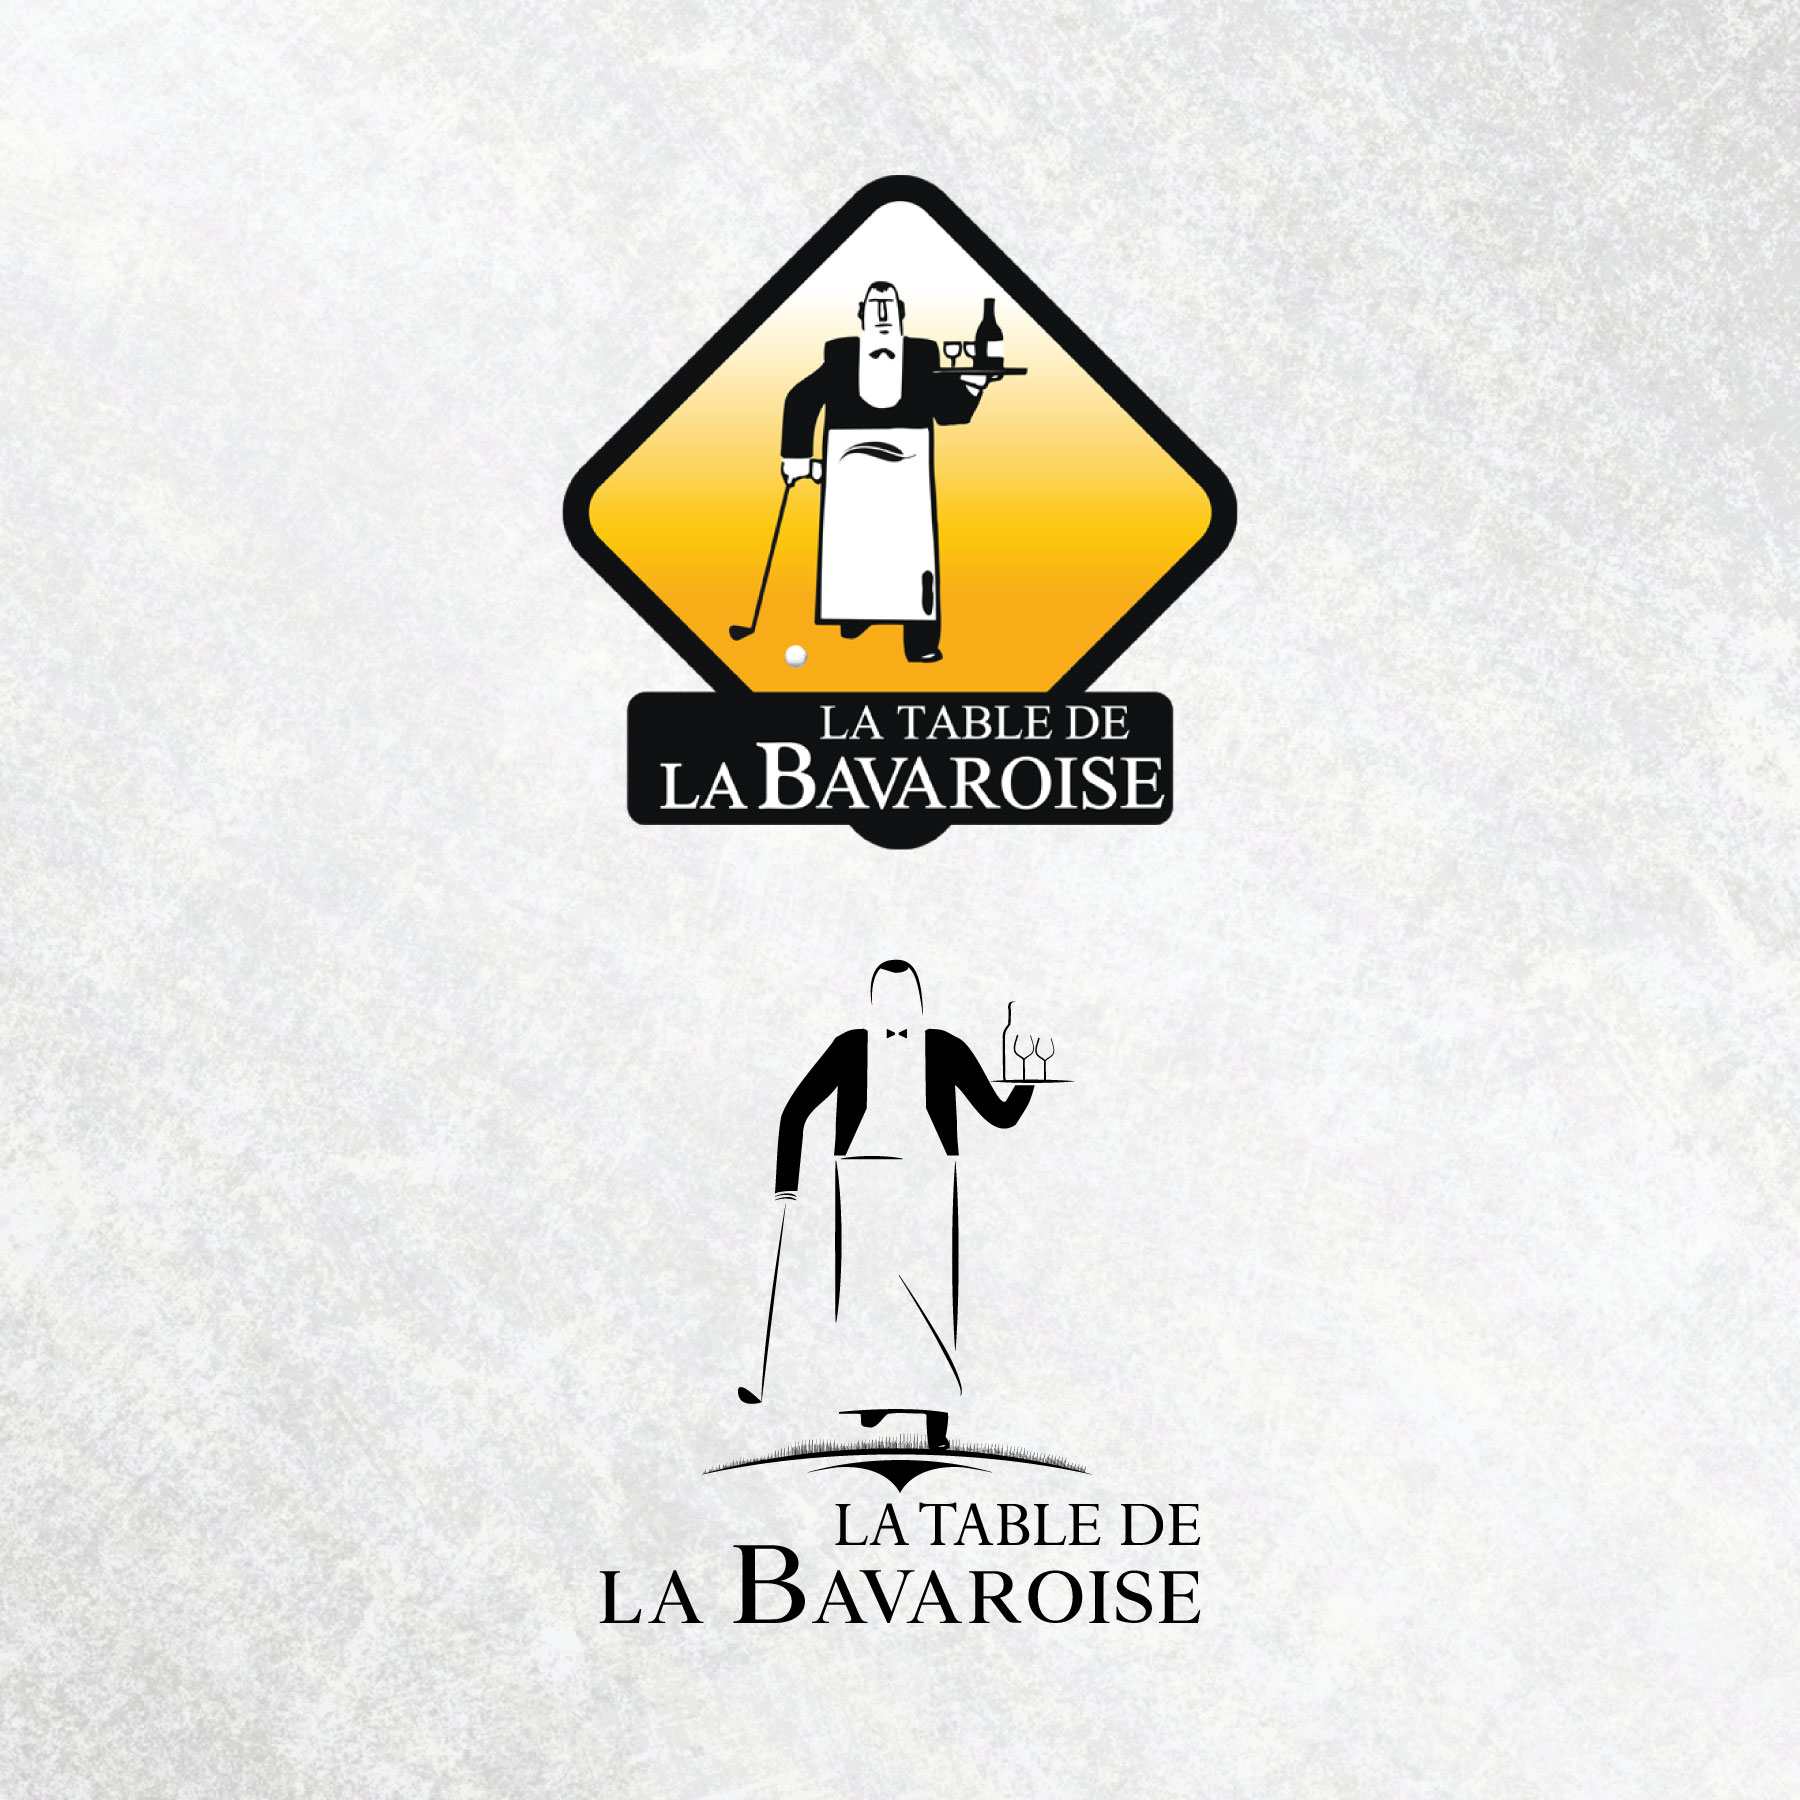 LA TABLE BAVAROISE